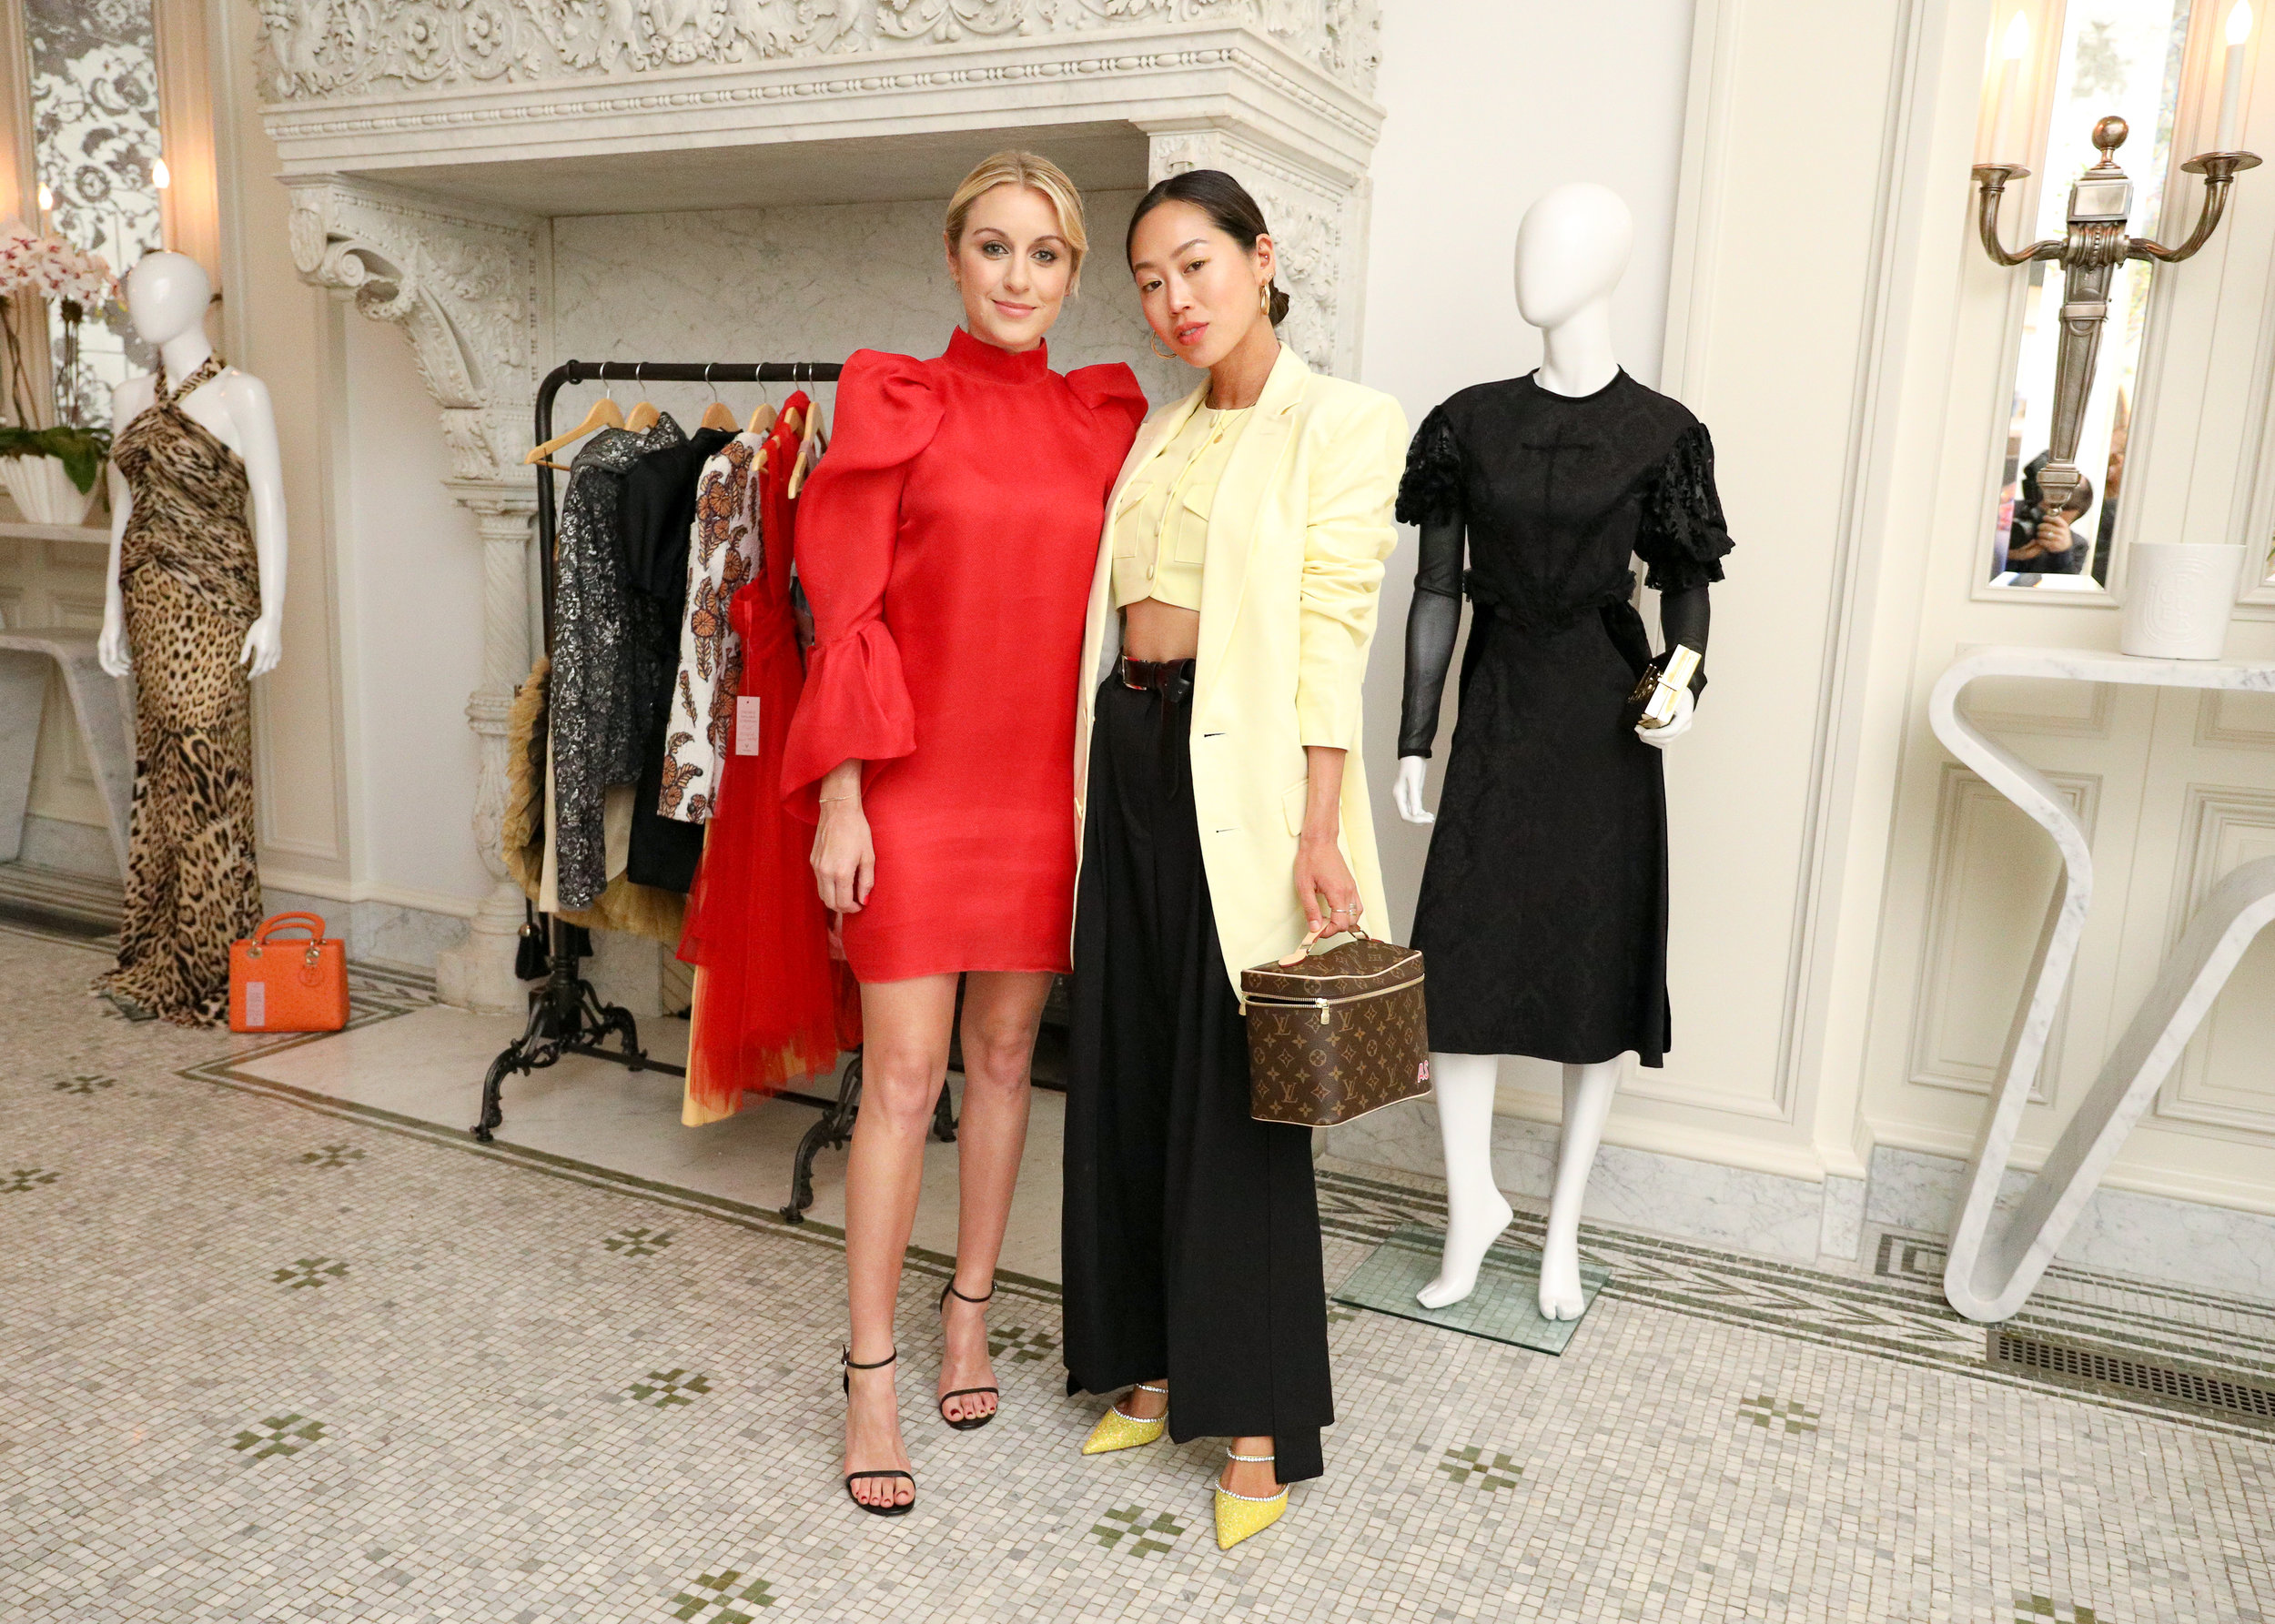 Alise Collective founder Dria Murphy and influencer Aimee Song.